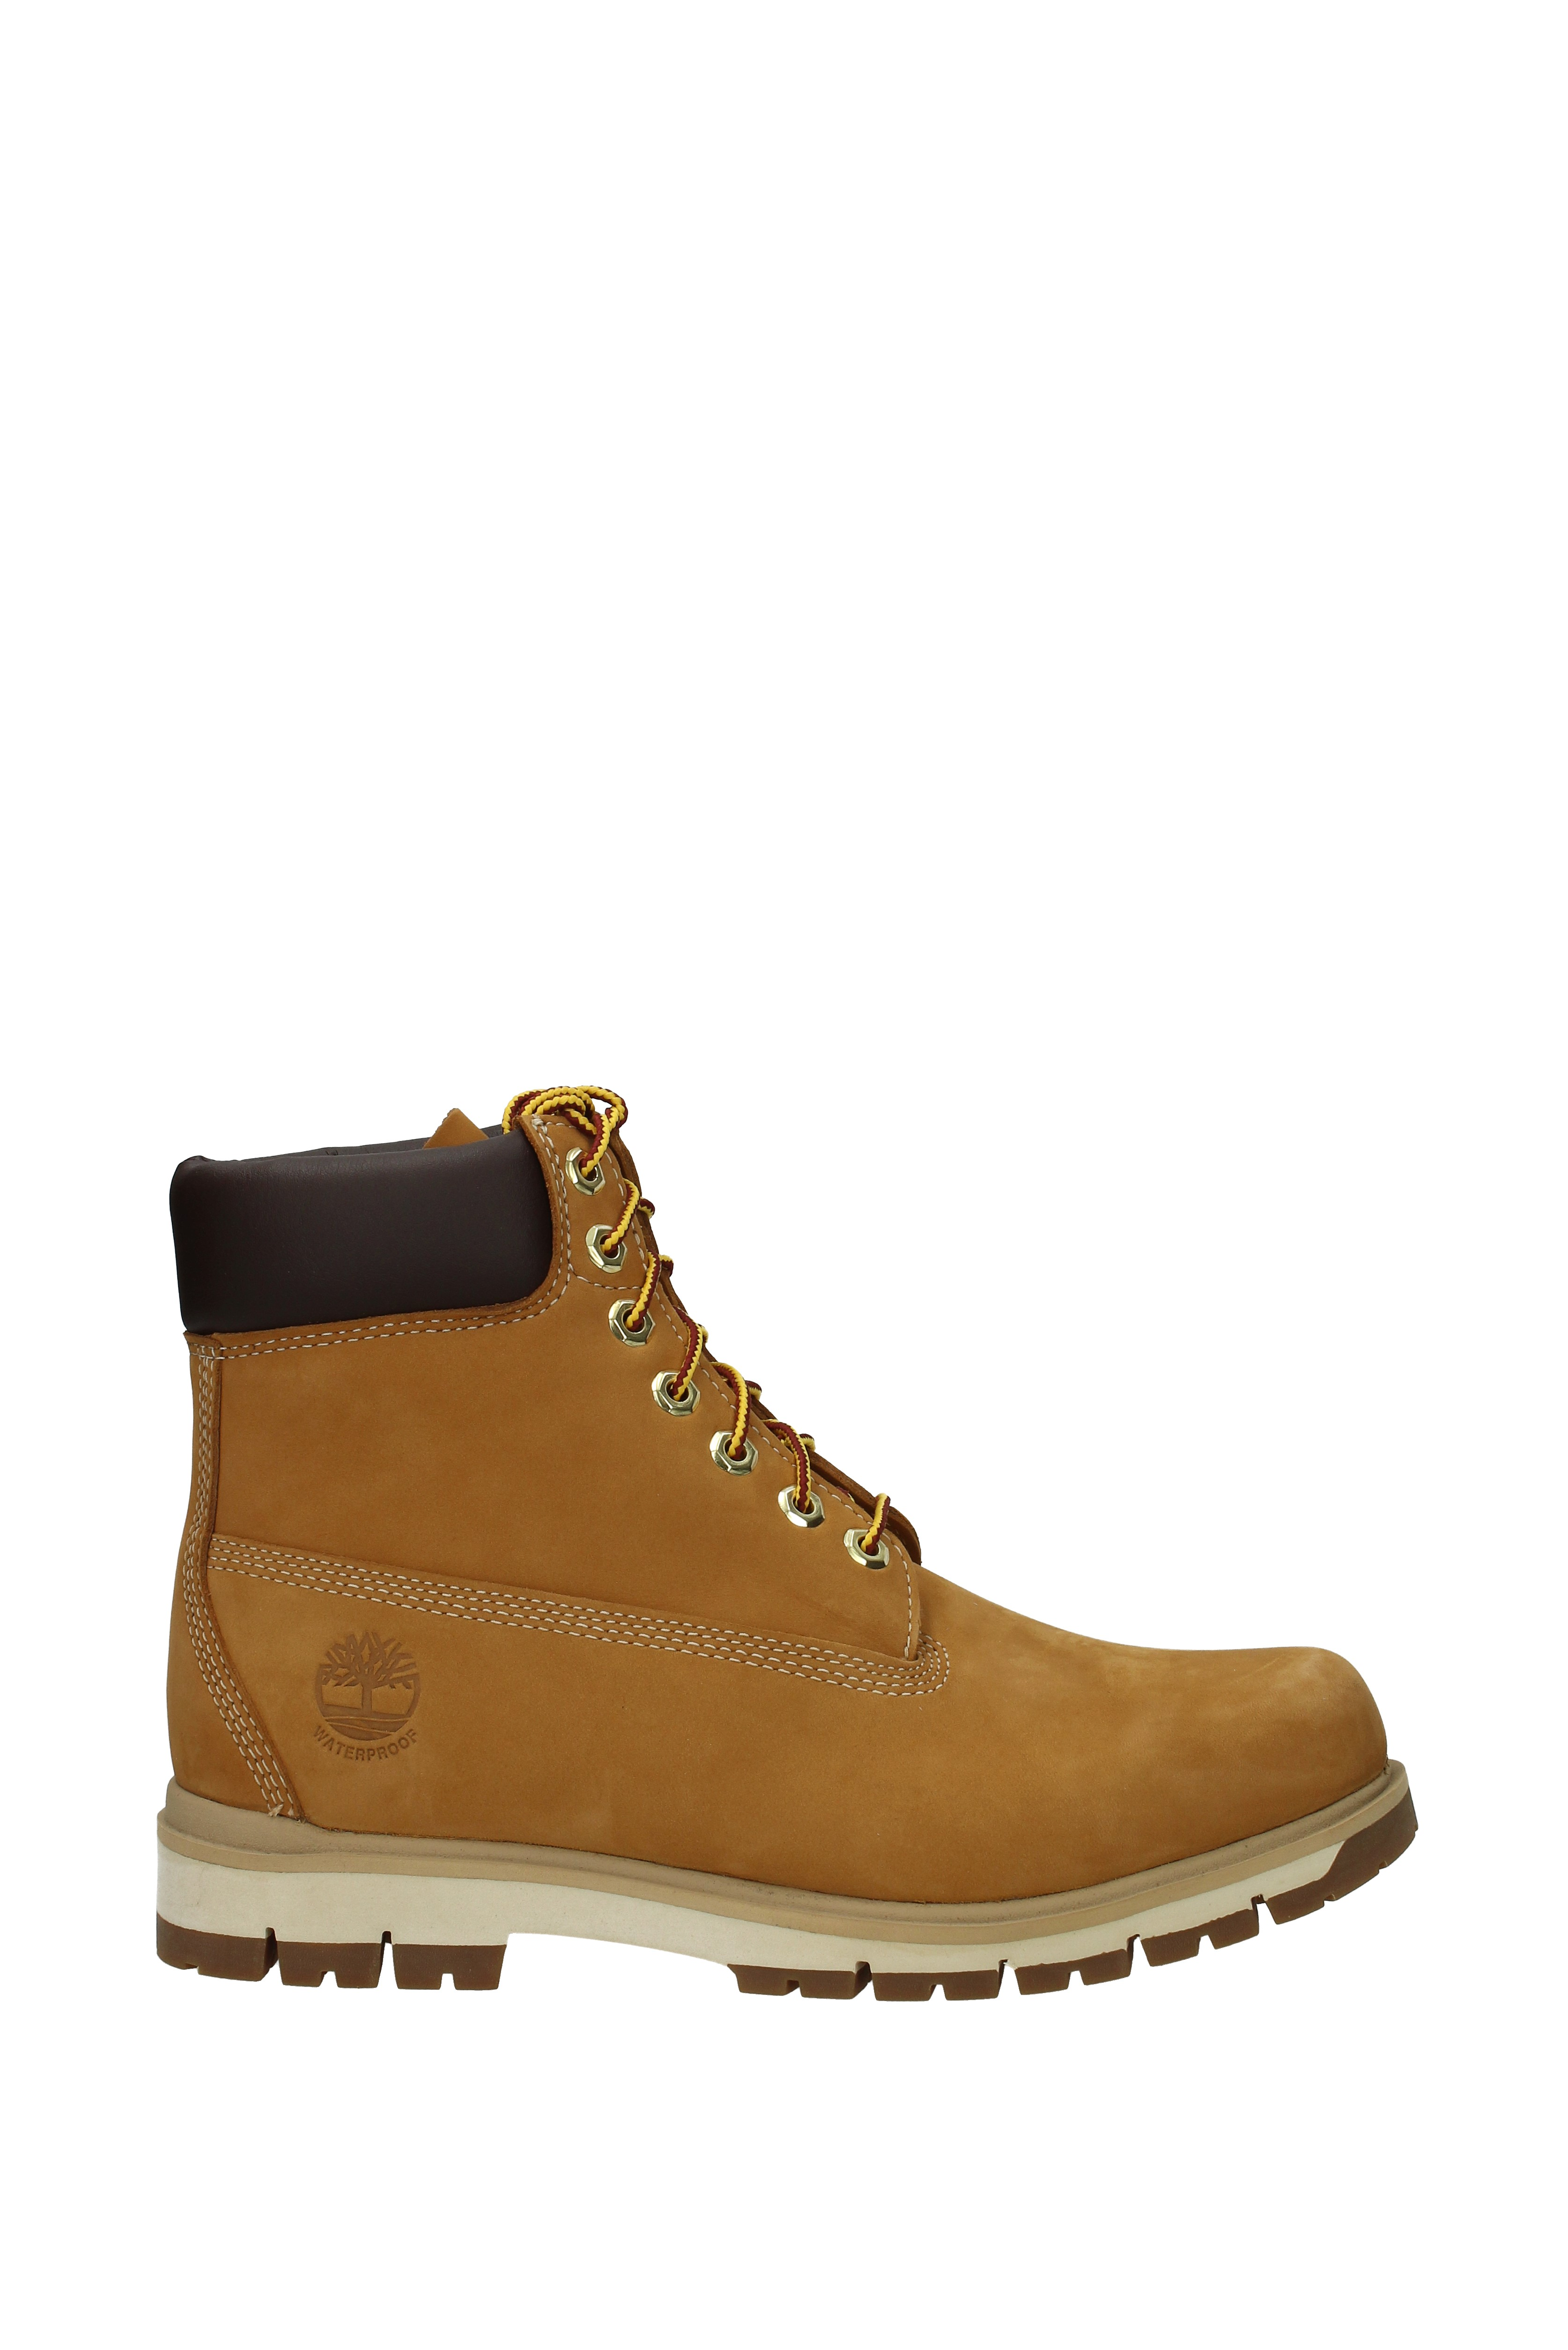 beffd95830e Details about Ankle boots Timberland radford waterproof Men - Suede (A1JH)